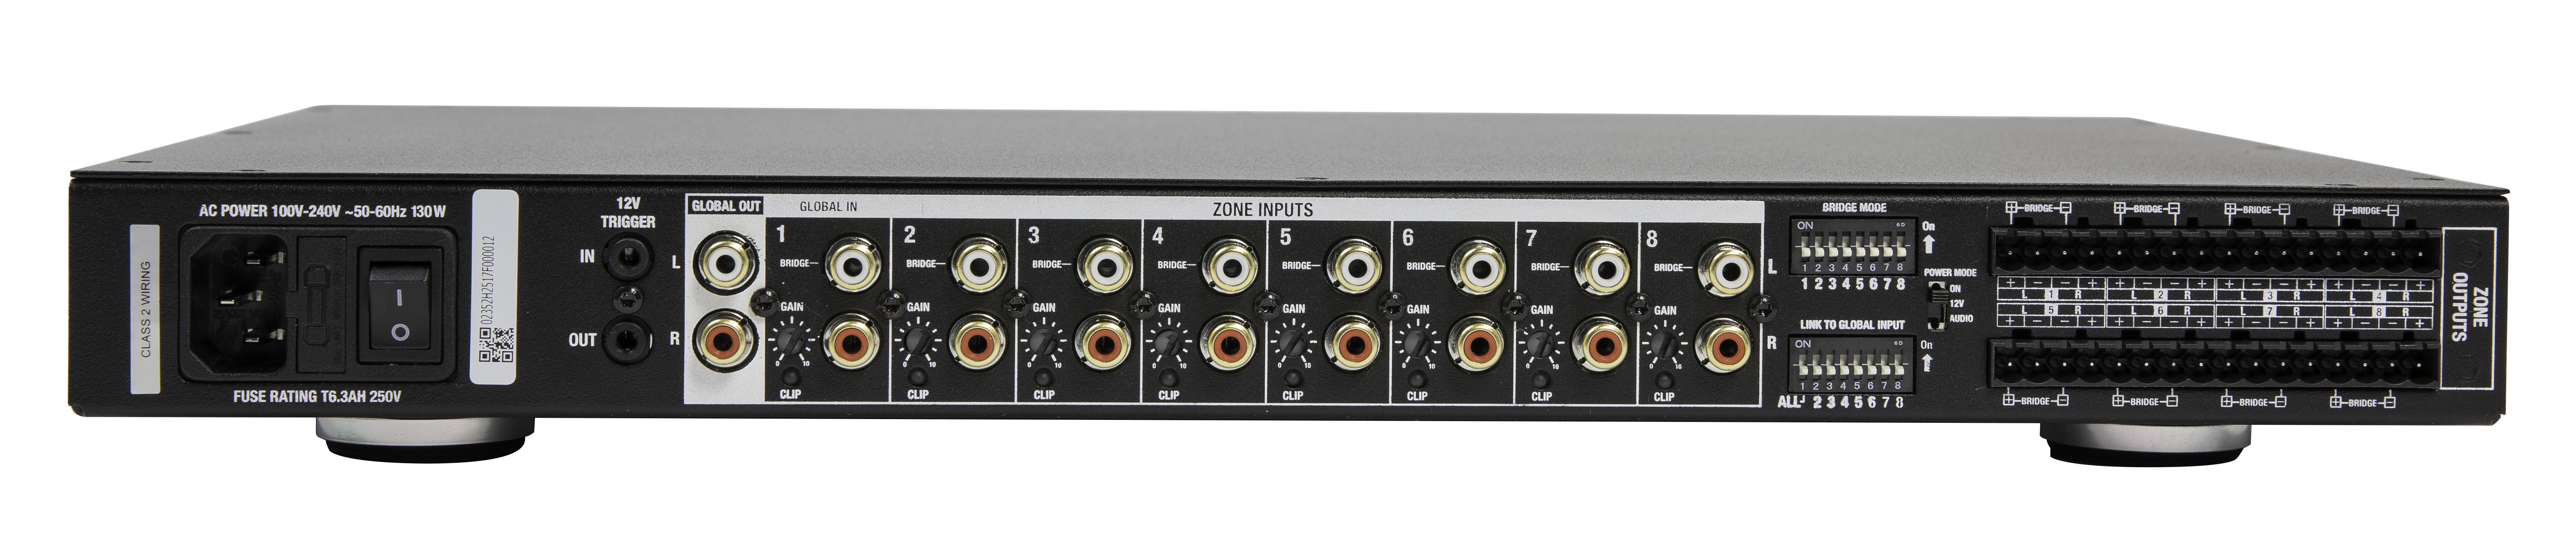 Control4 4 zone amplifier manual